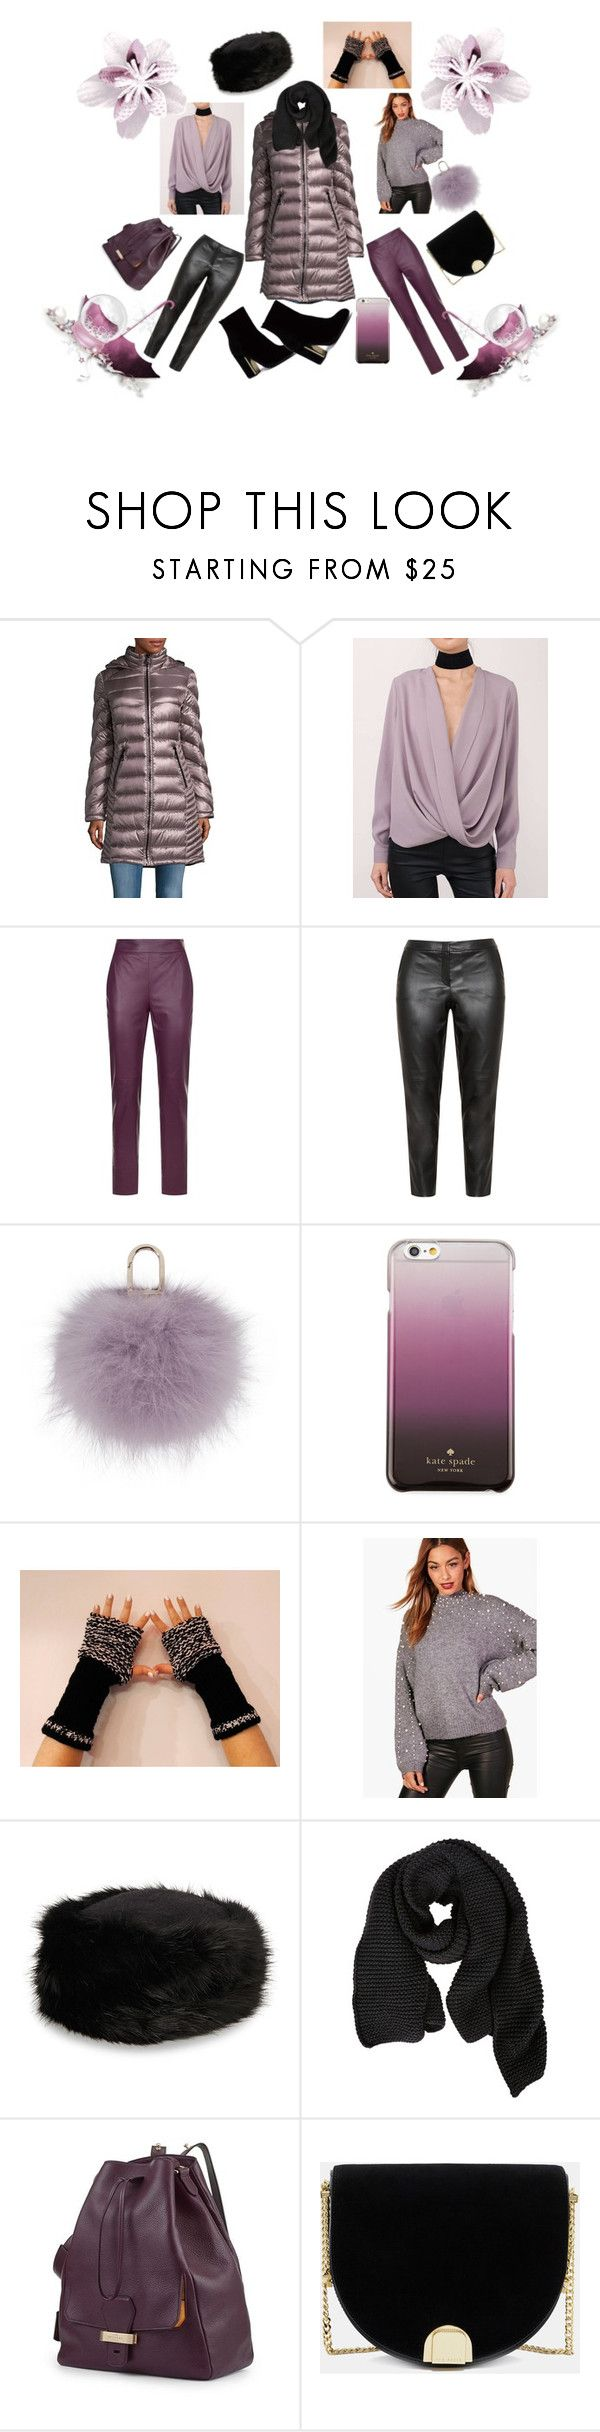 Pastel Colors by ladyscarlet01 on Polyvore featuring Boohoo, WithChic, Calvin Klein, ESCADA, Samoon, Ted Baker, FABIANA FILIPPI, Yves Salomon and Kate Spade